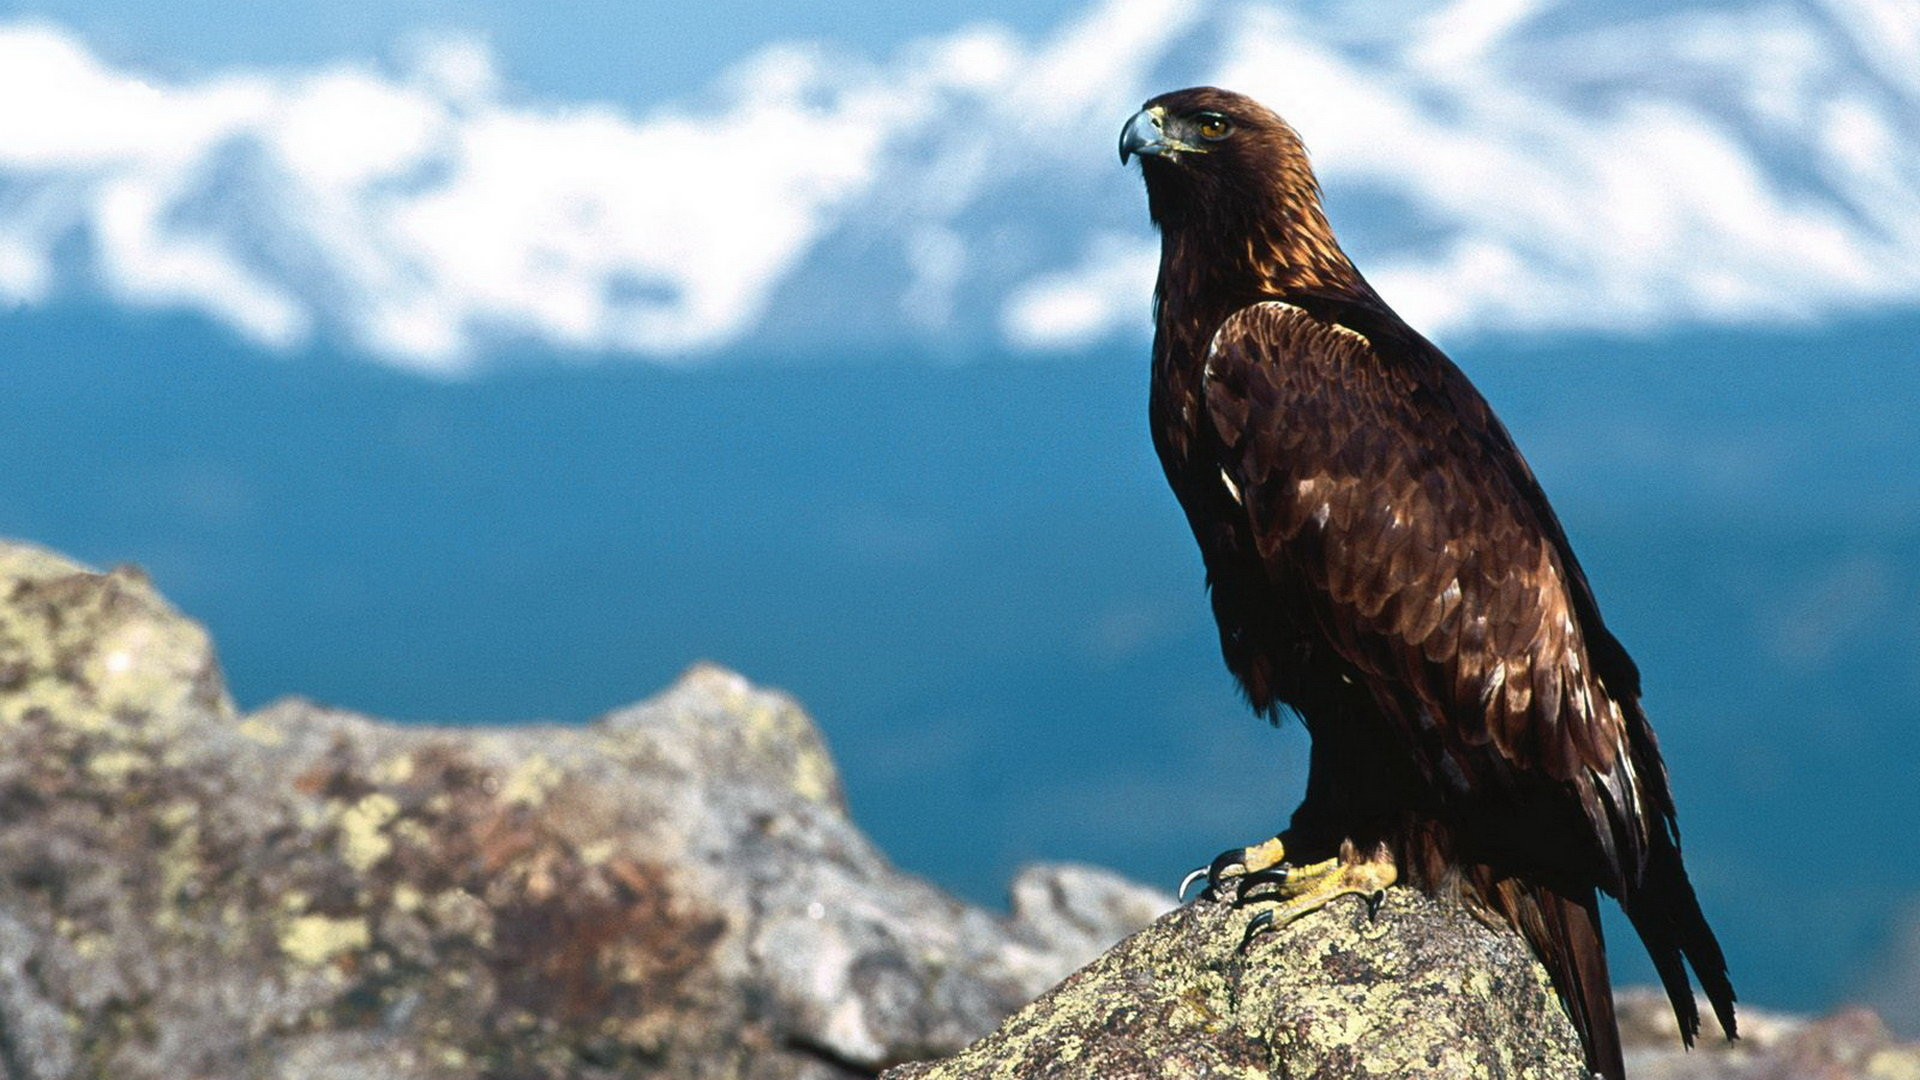 Awesome Eagle free wallpaper ID:231352 for hd 1920x1080 desktop